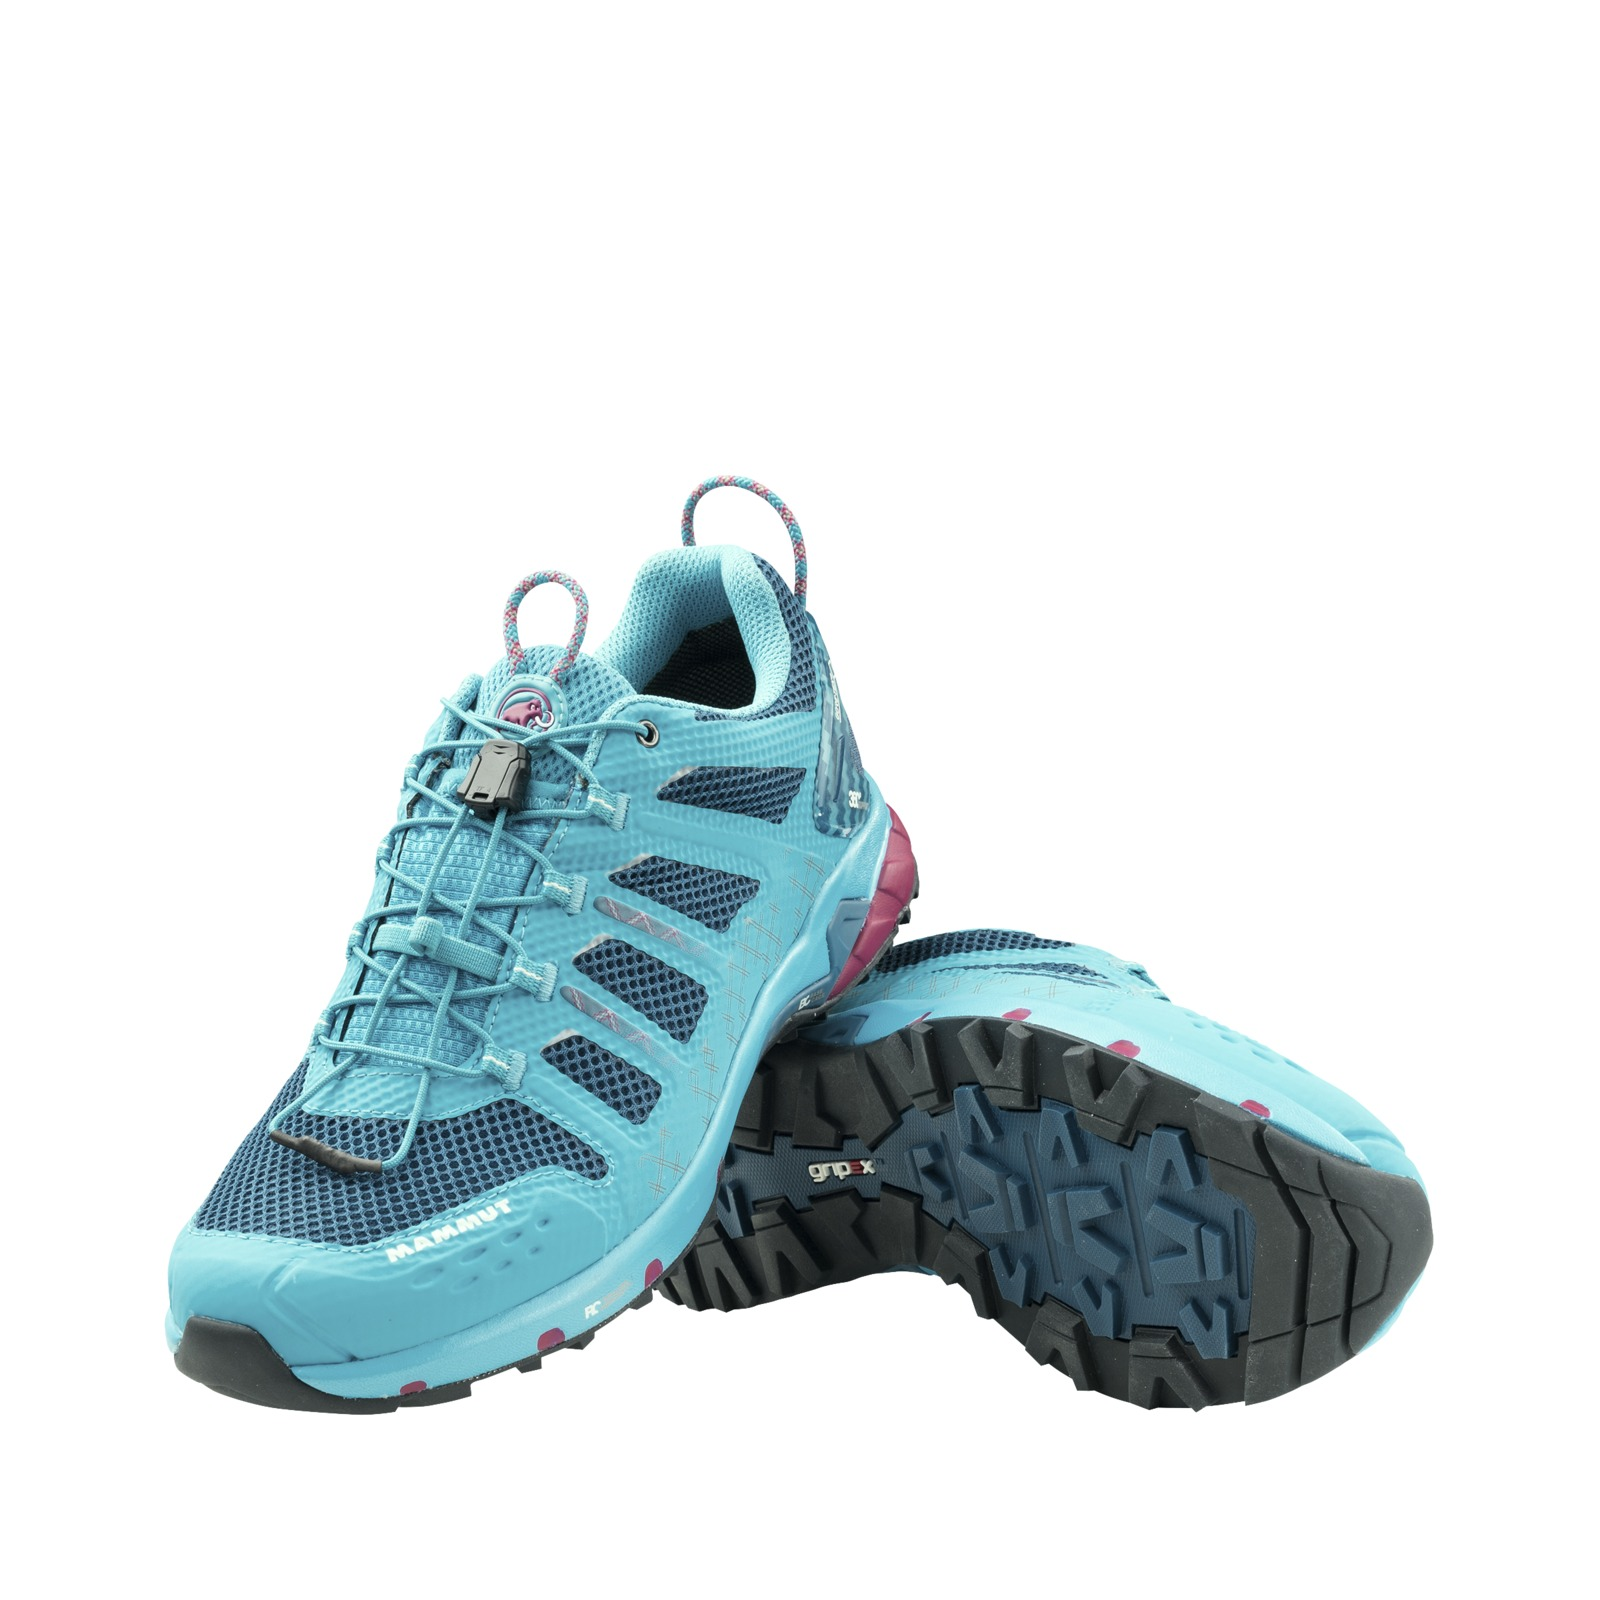 a5edc5c4fa MAMMUT T AENERGY LOW GTX® WOMEN -30%